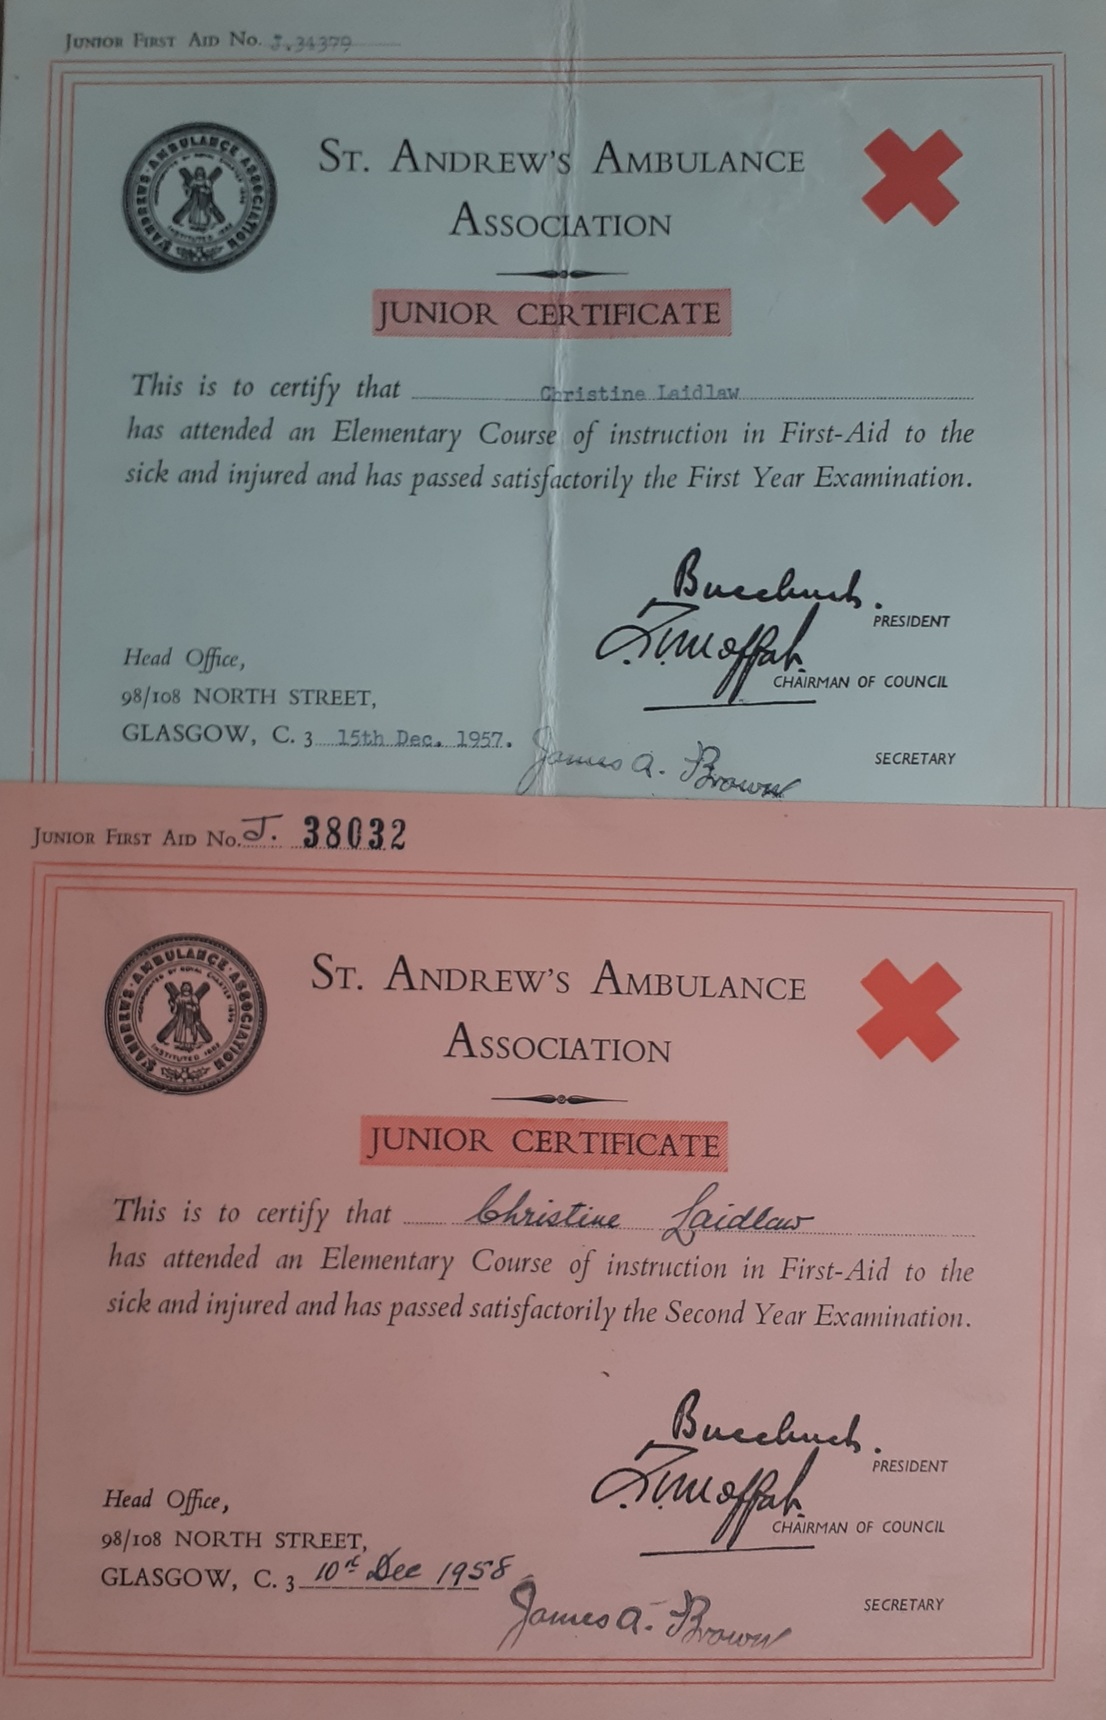 St Andrews Ambulance Certificates 1957 and 1958